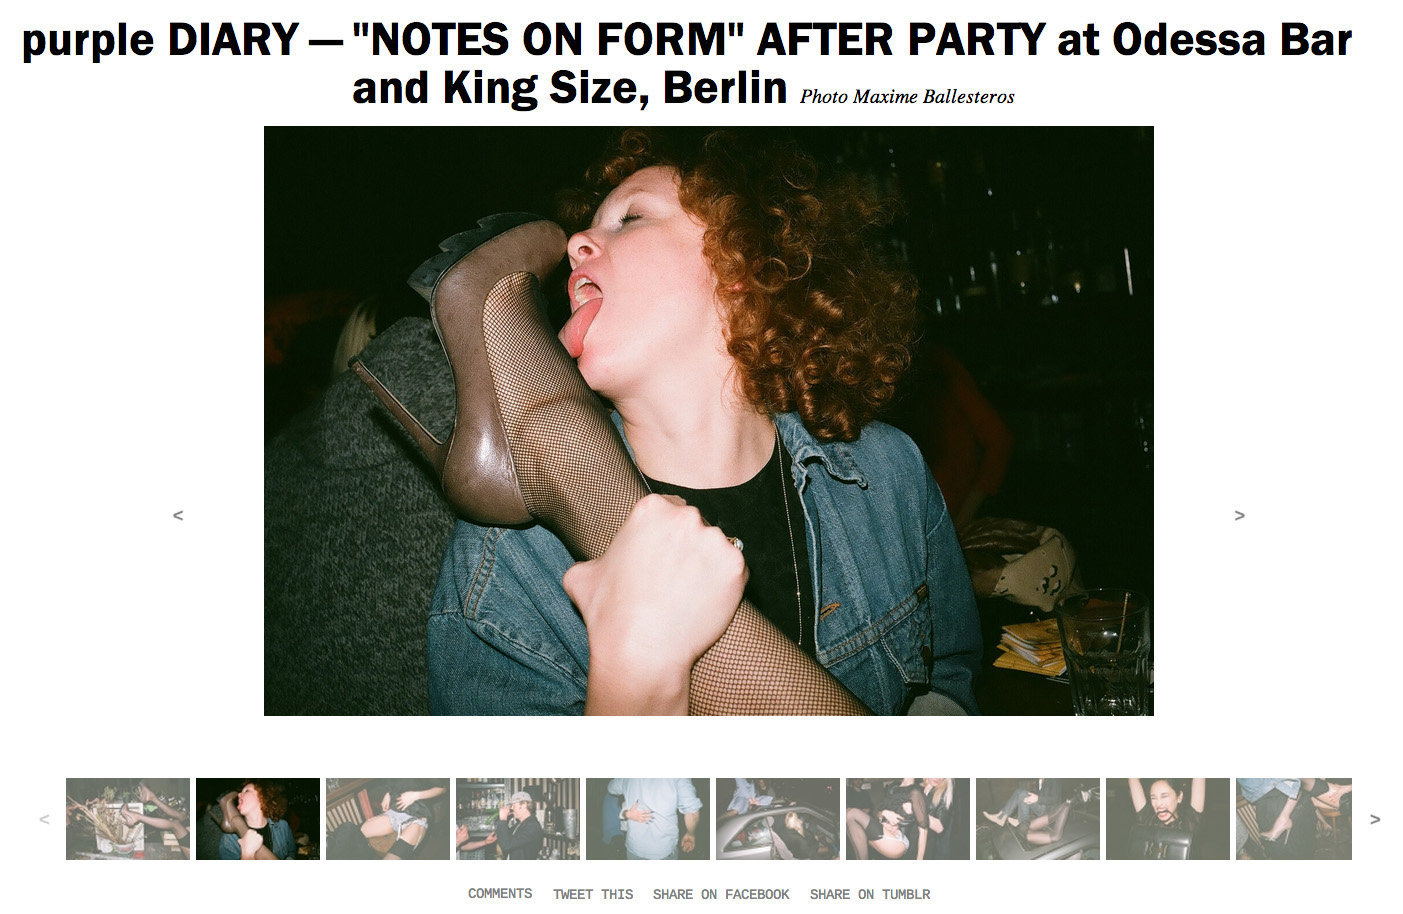 purple DIARY    NOTES ON FORM  AFTER PARTY at Odessa Bar and King Size  Berlin.jpg